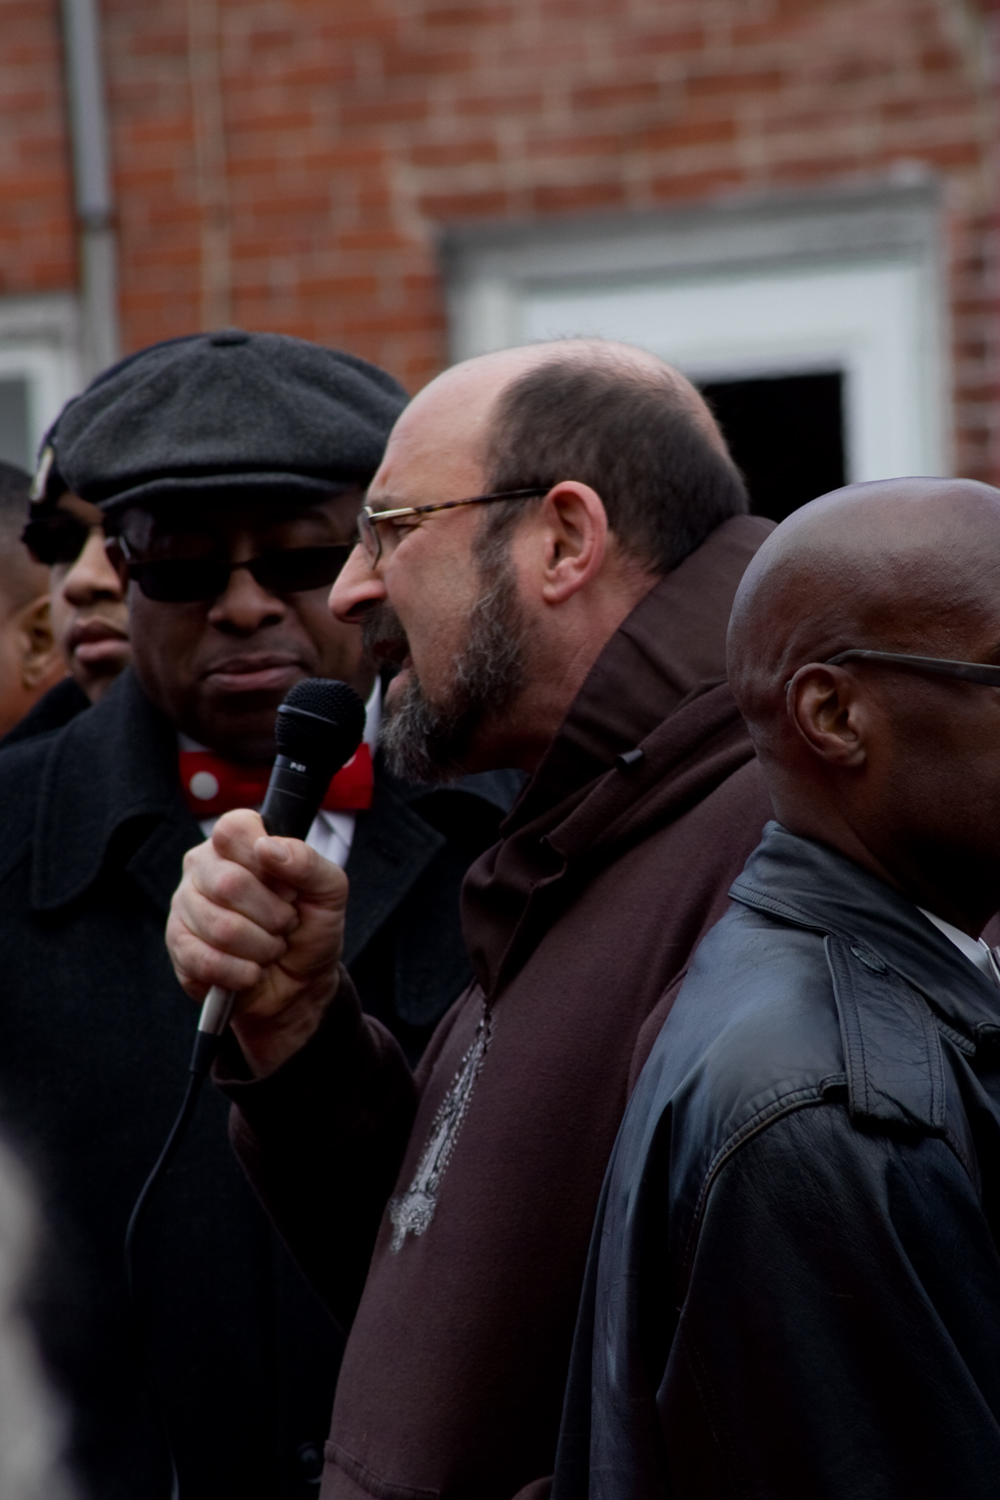 Fr. Chris Posch takes the microphone to lead a prayer in English and Spanish at the Martin Luther King Jr. Day march in Wilmington, Delaware on January 19, 2015